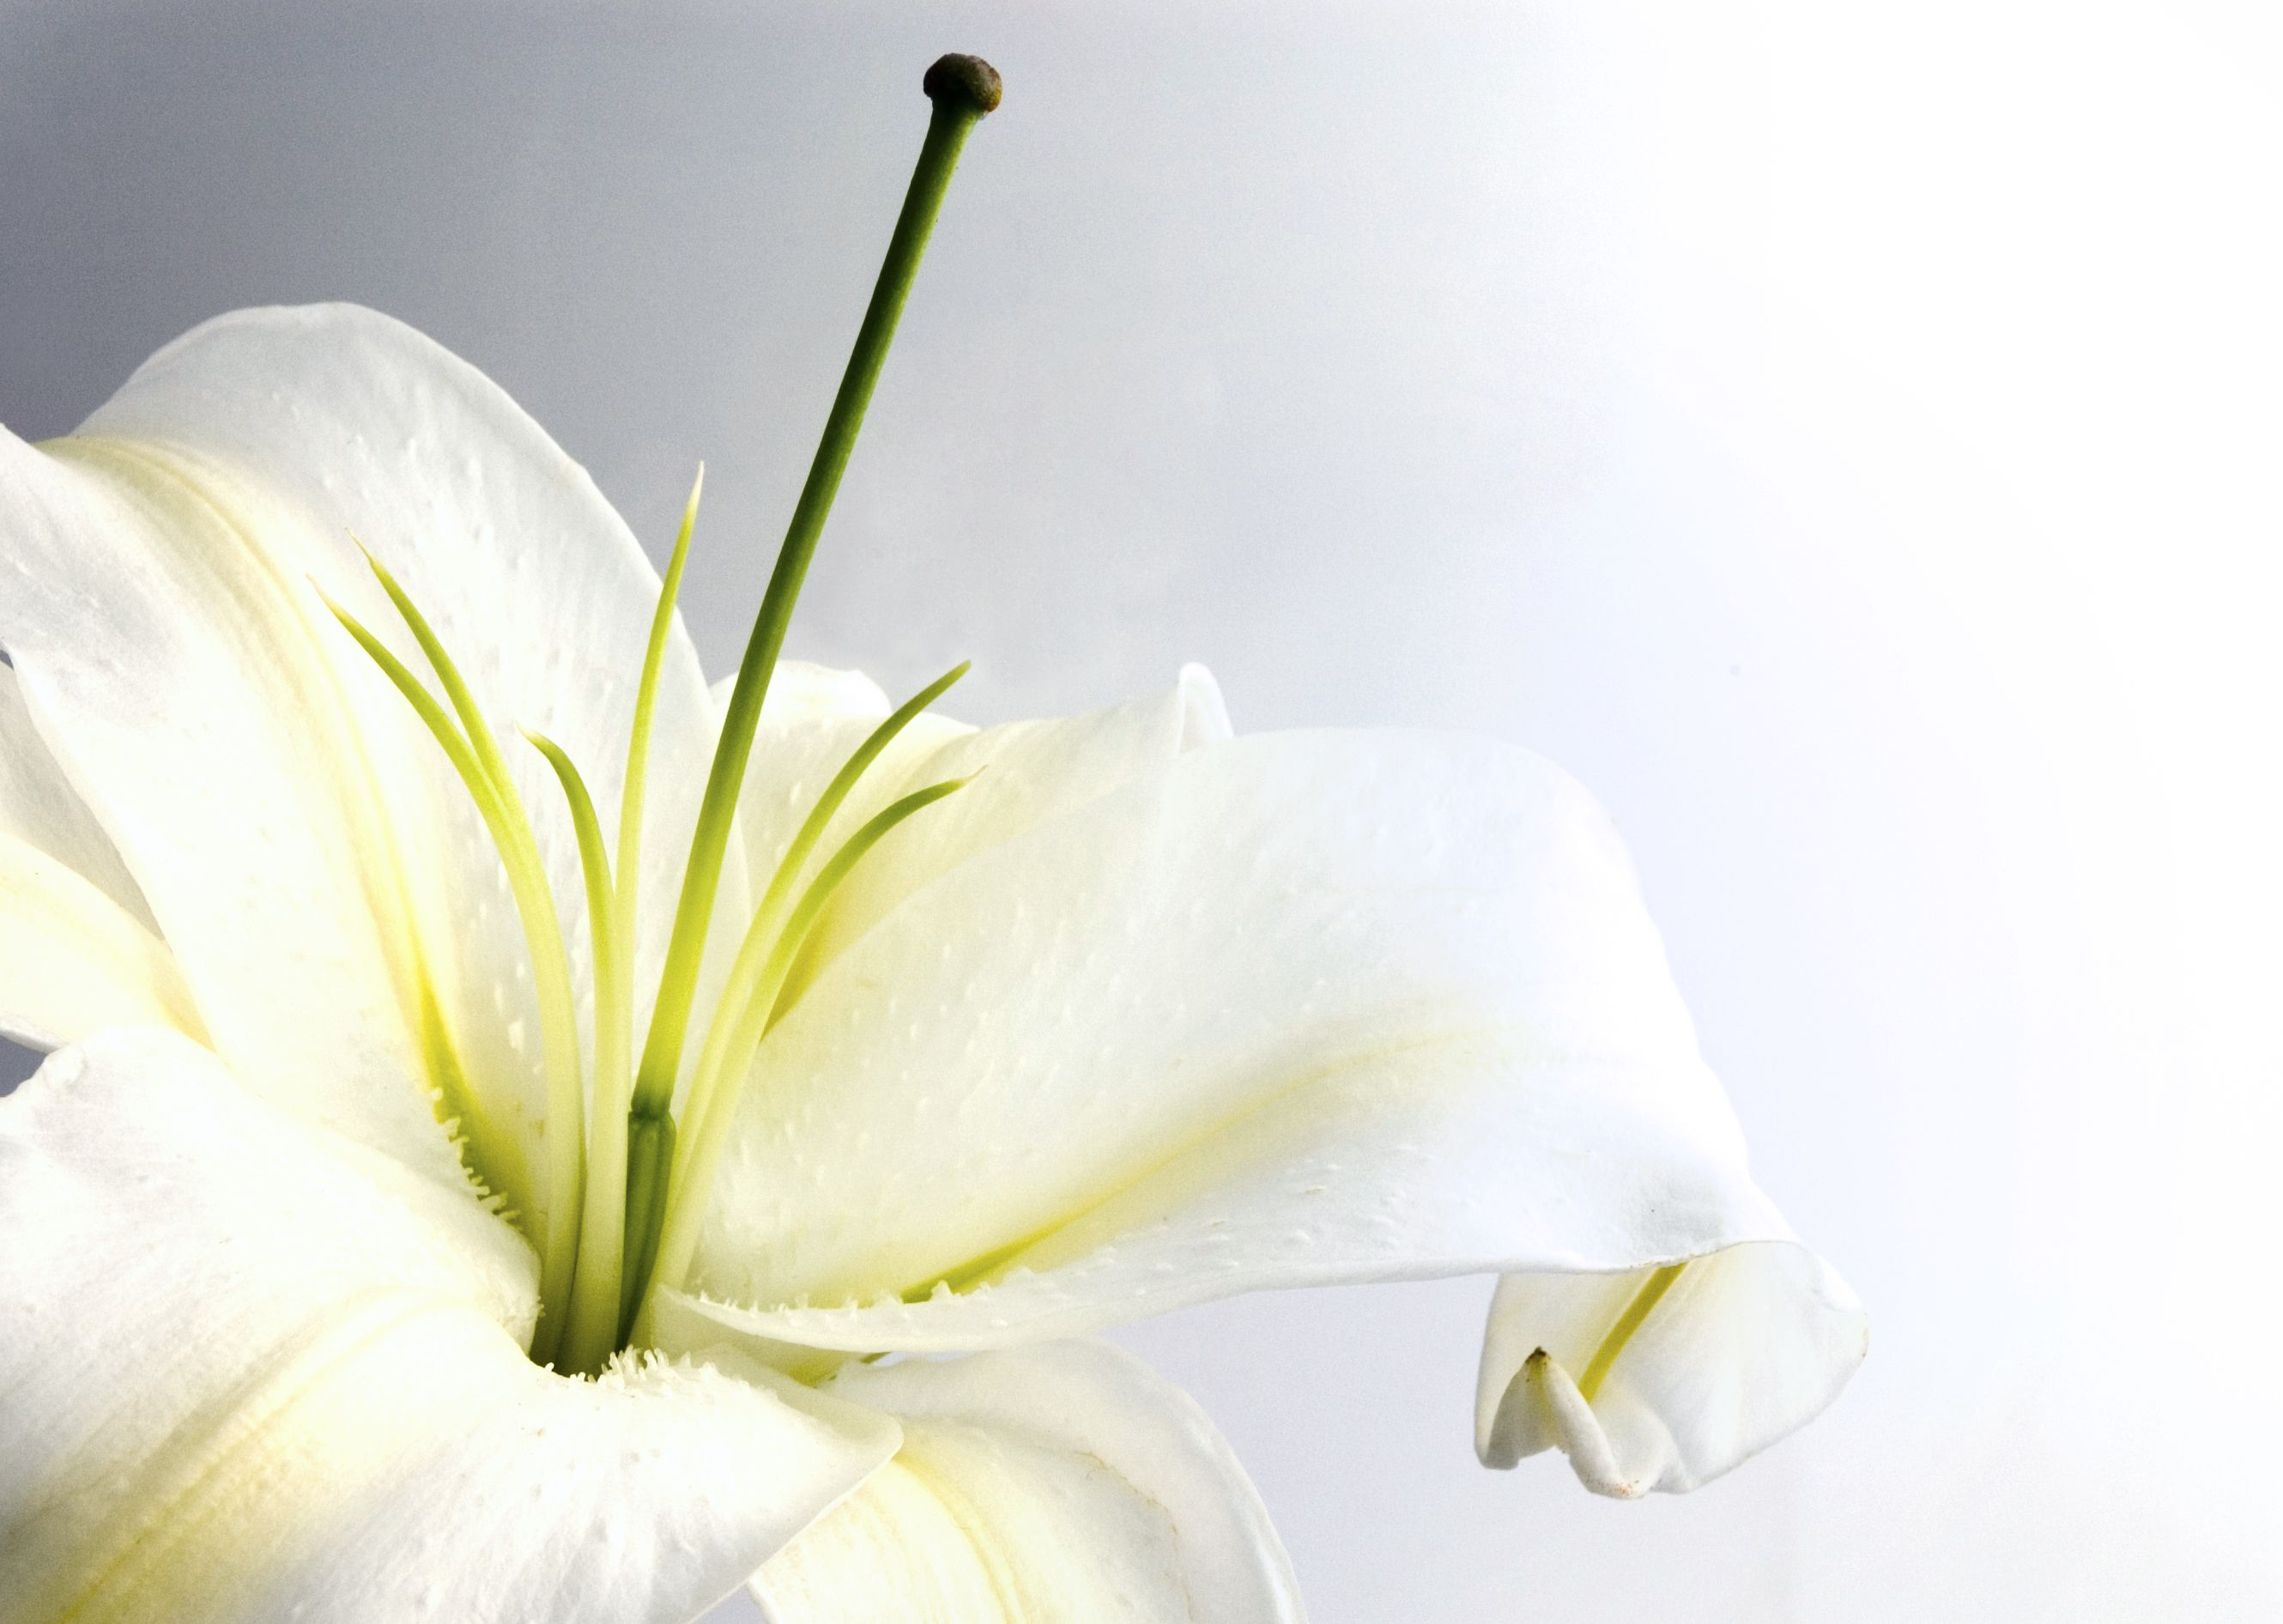 daisy background white lily and heart shape white lily closeup 2660x1892